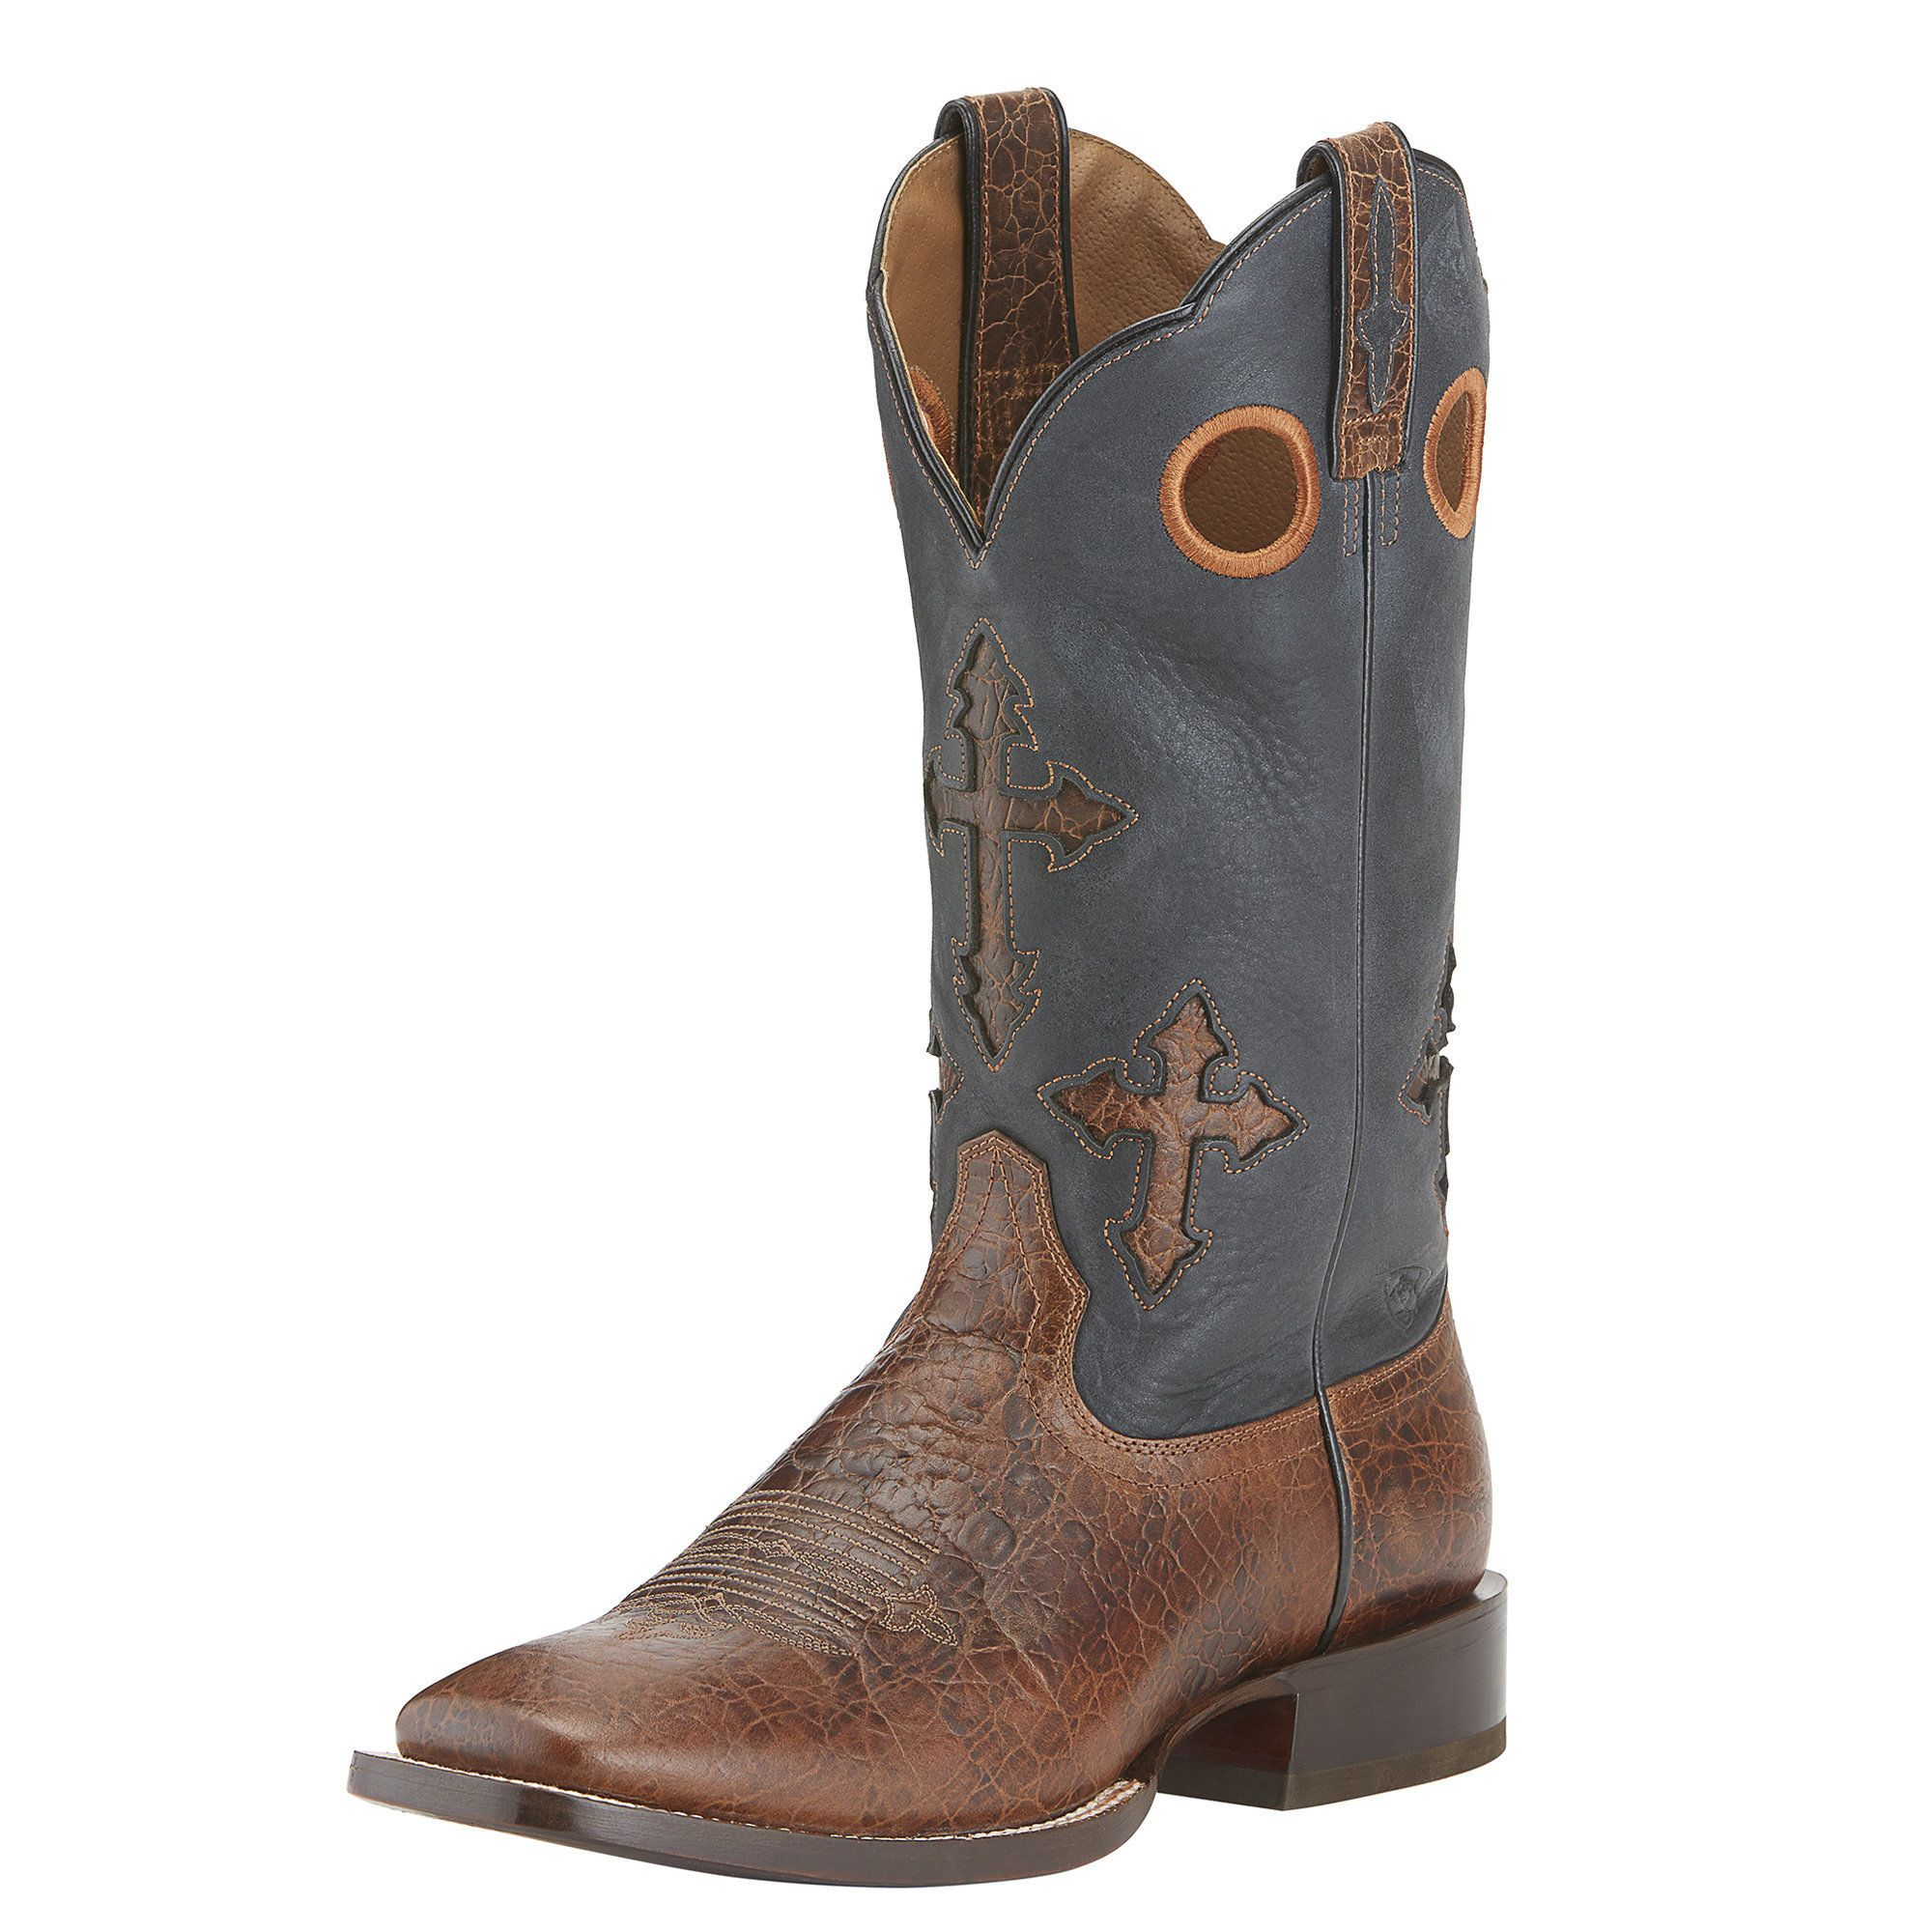 Men's Ranchero Western Boots in Adobe Clay Leather, Size 9